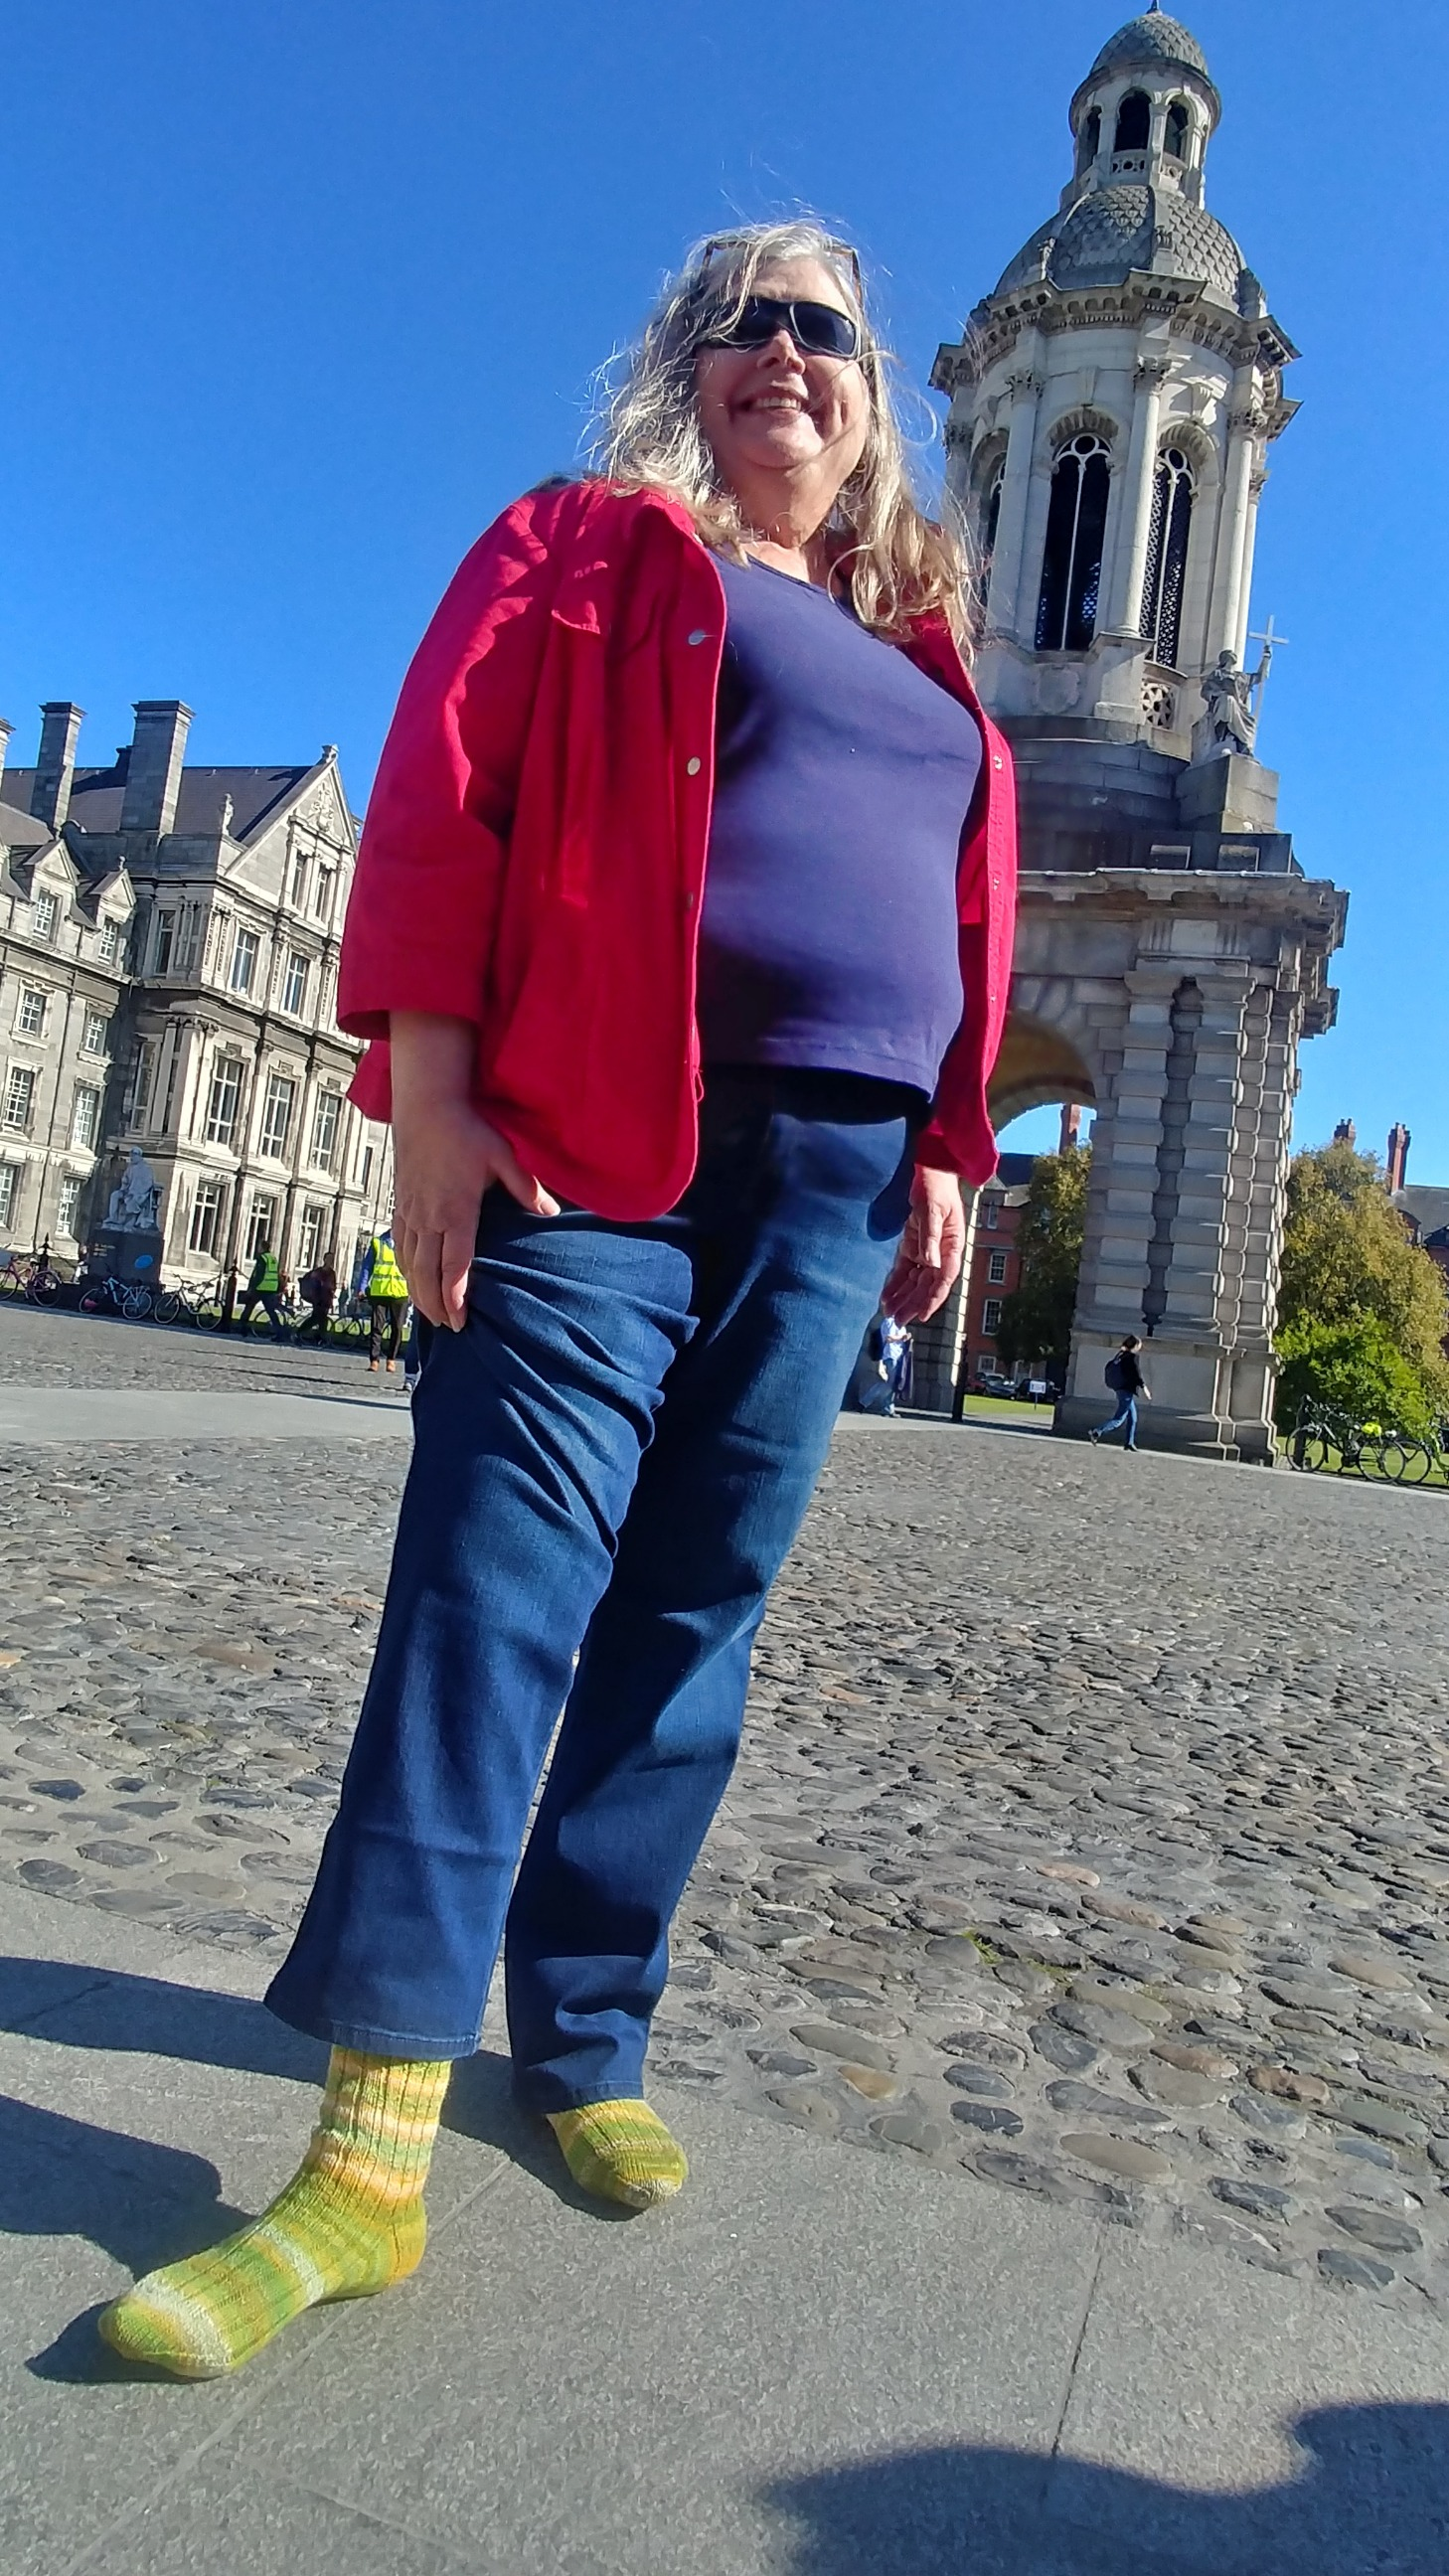 Mom and her socks at Trinity college